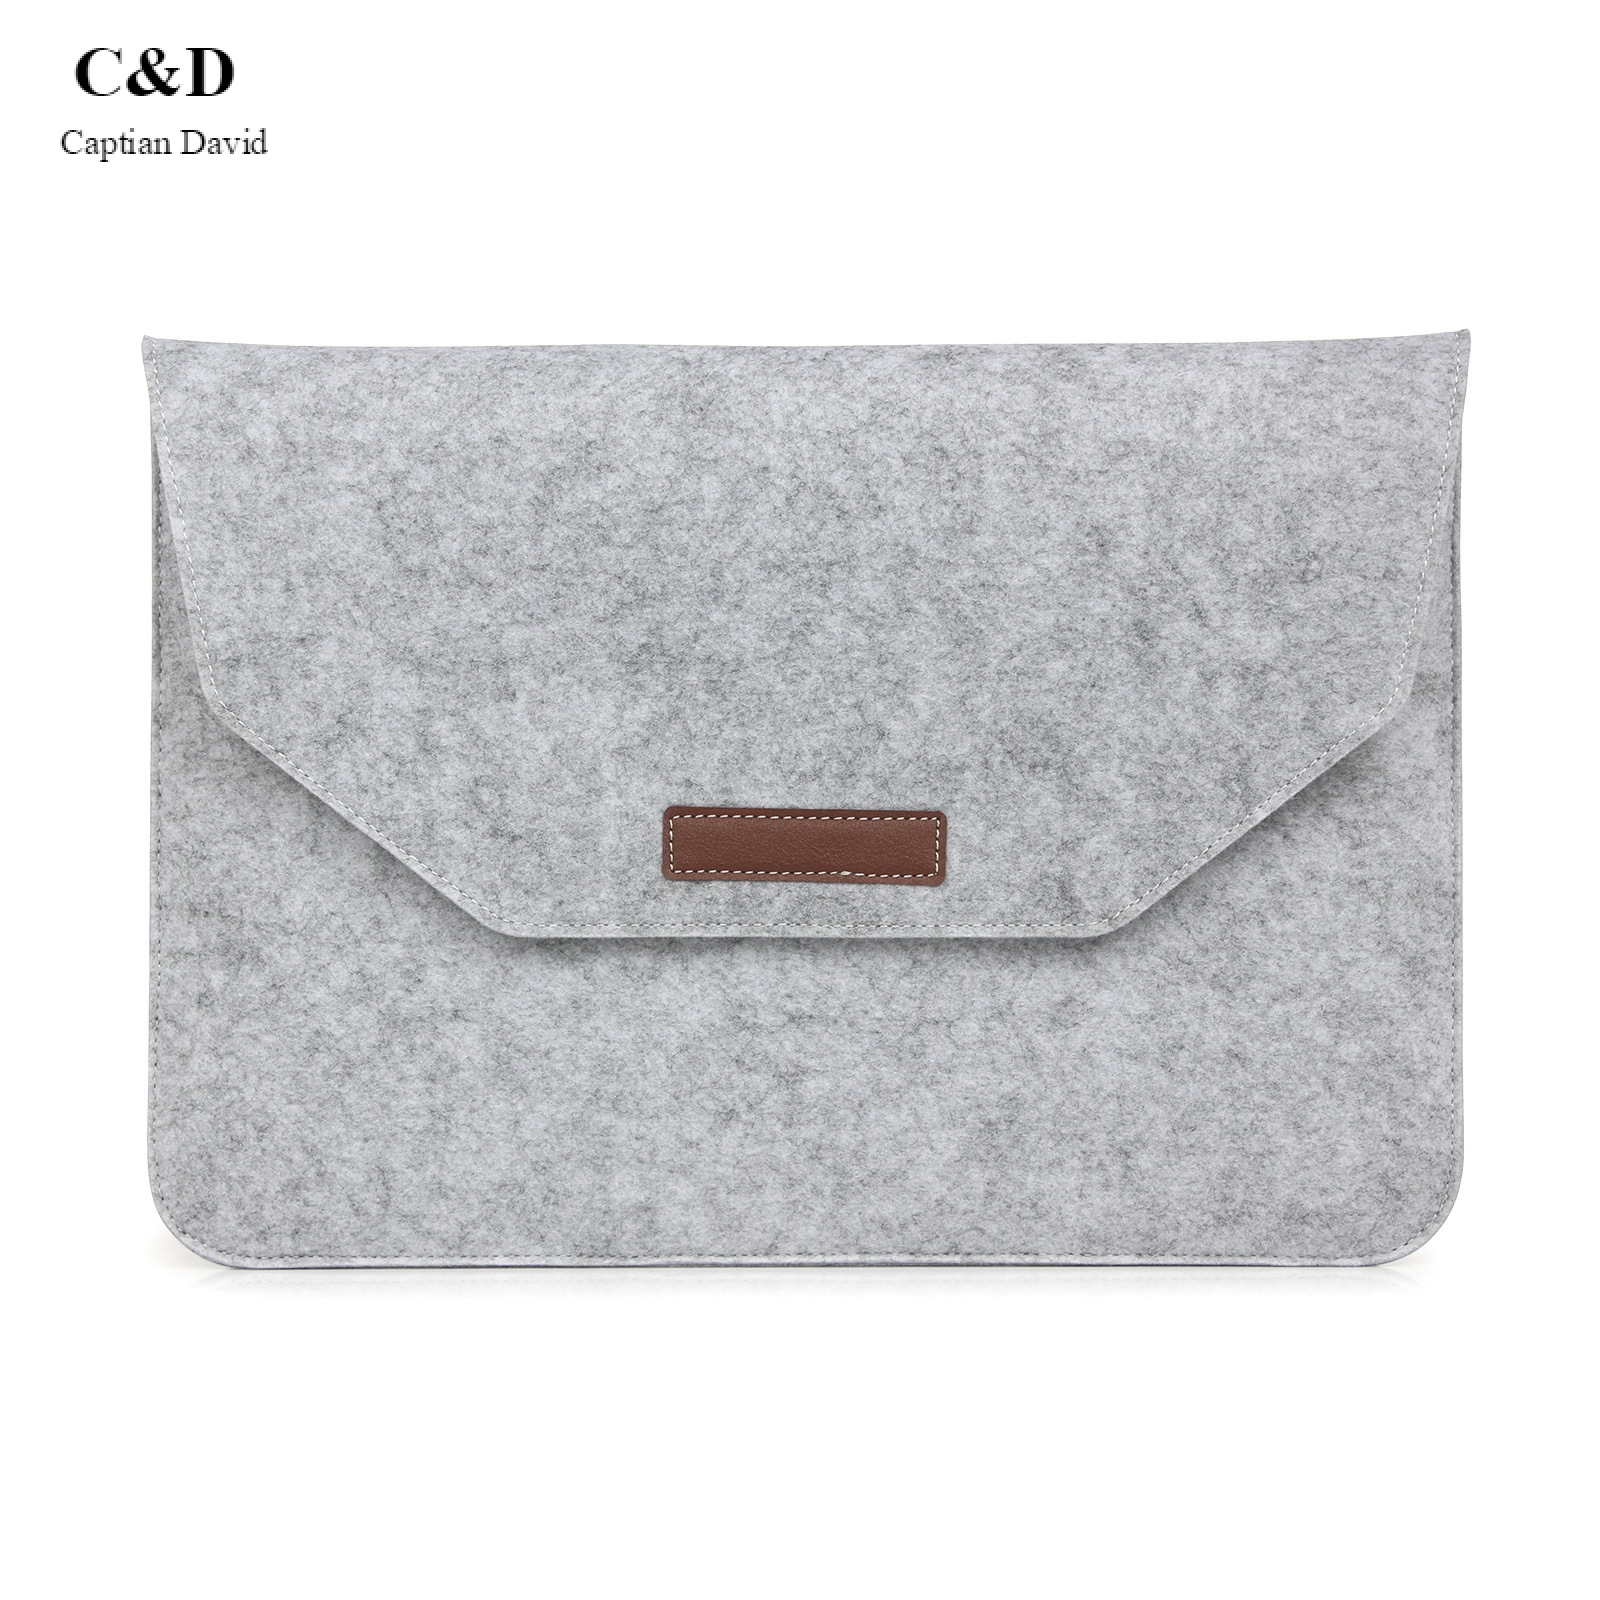 MacBook/iPad Gift Flat Sleeve Protective Case for Felt Apple Notebook Computer Bag